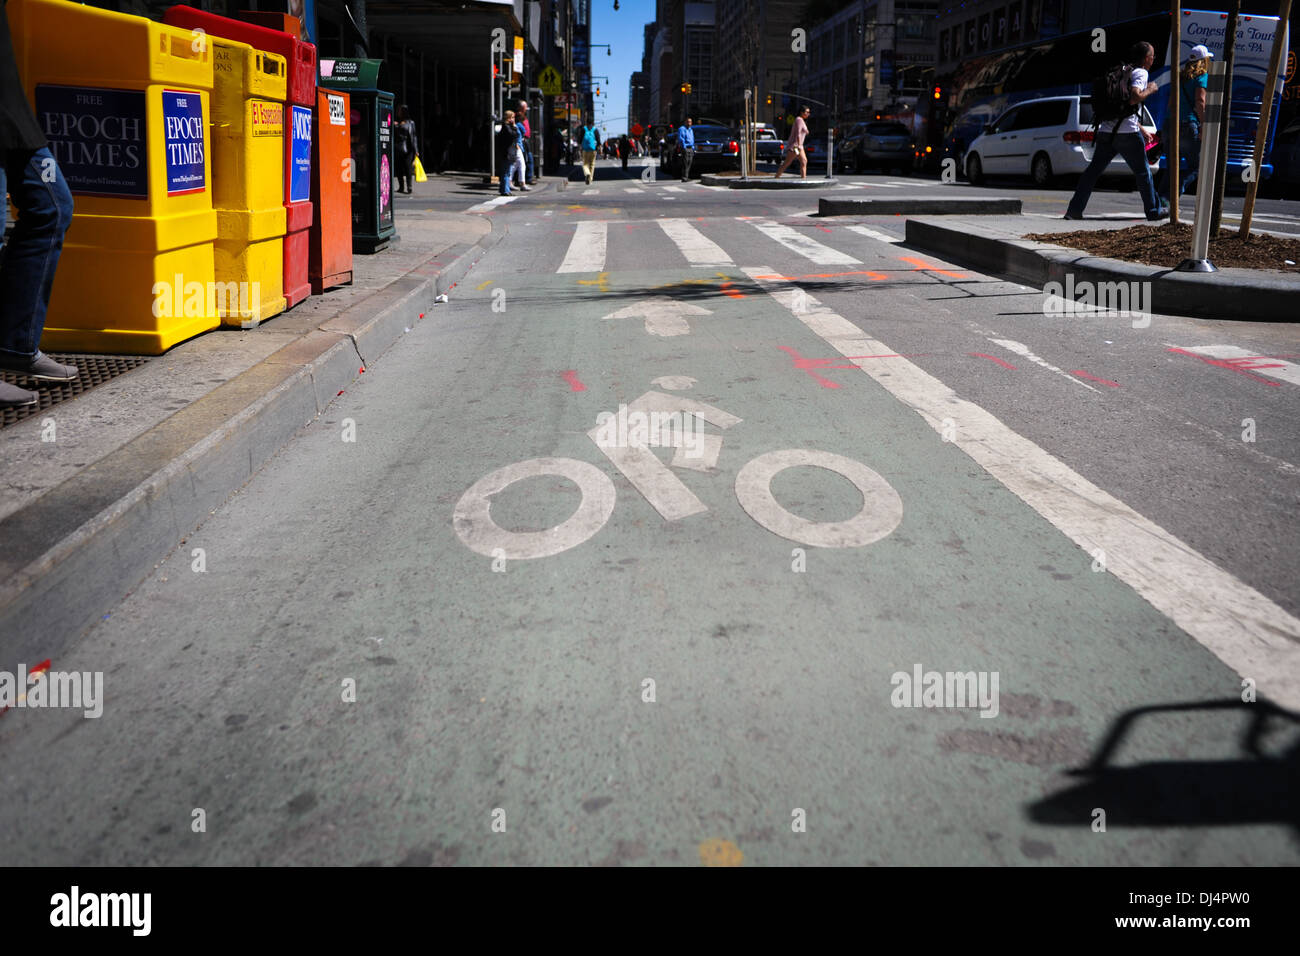 New York bike lane - Stock Image